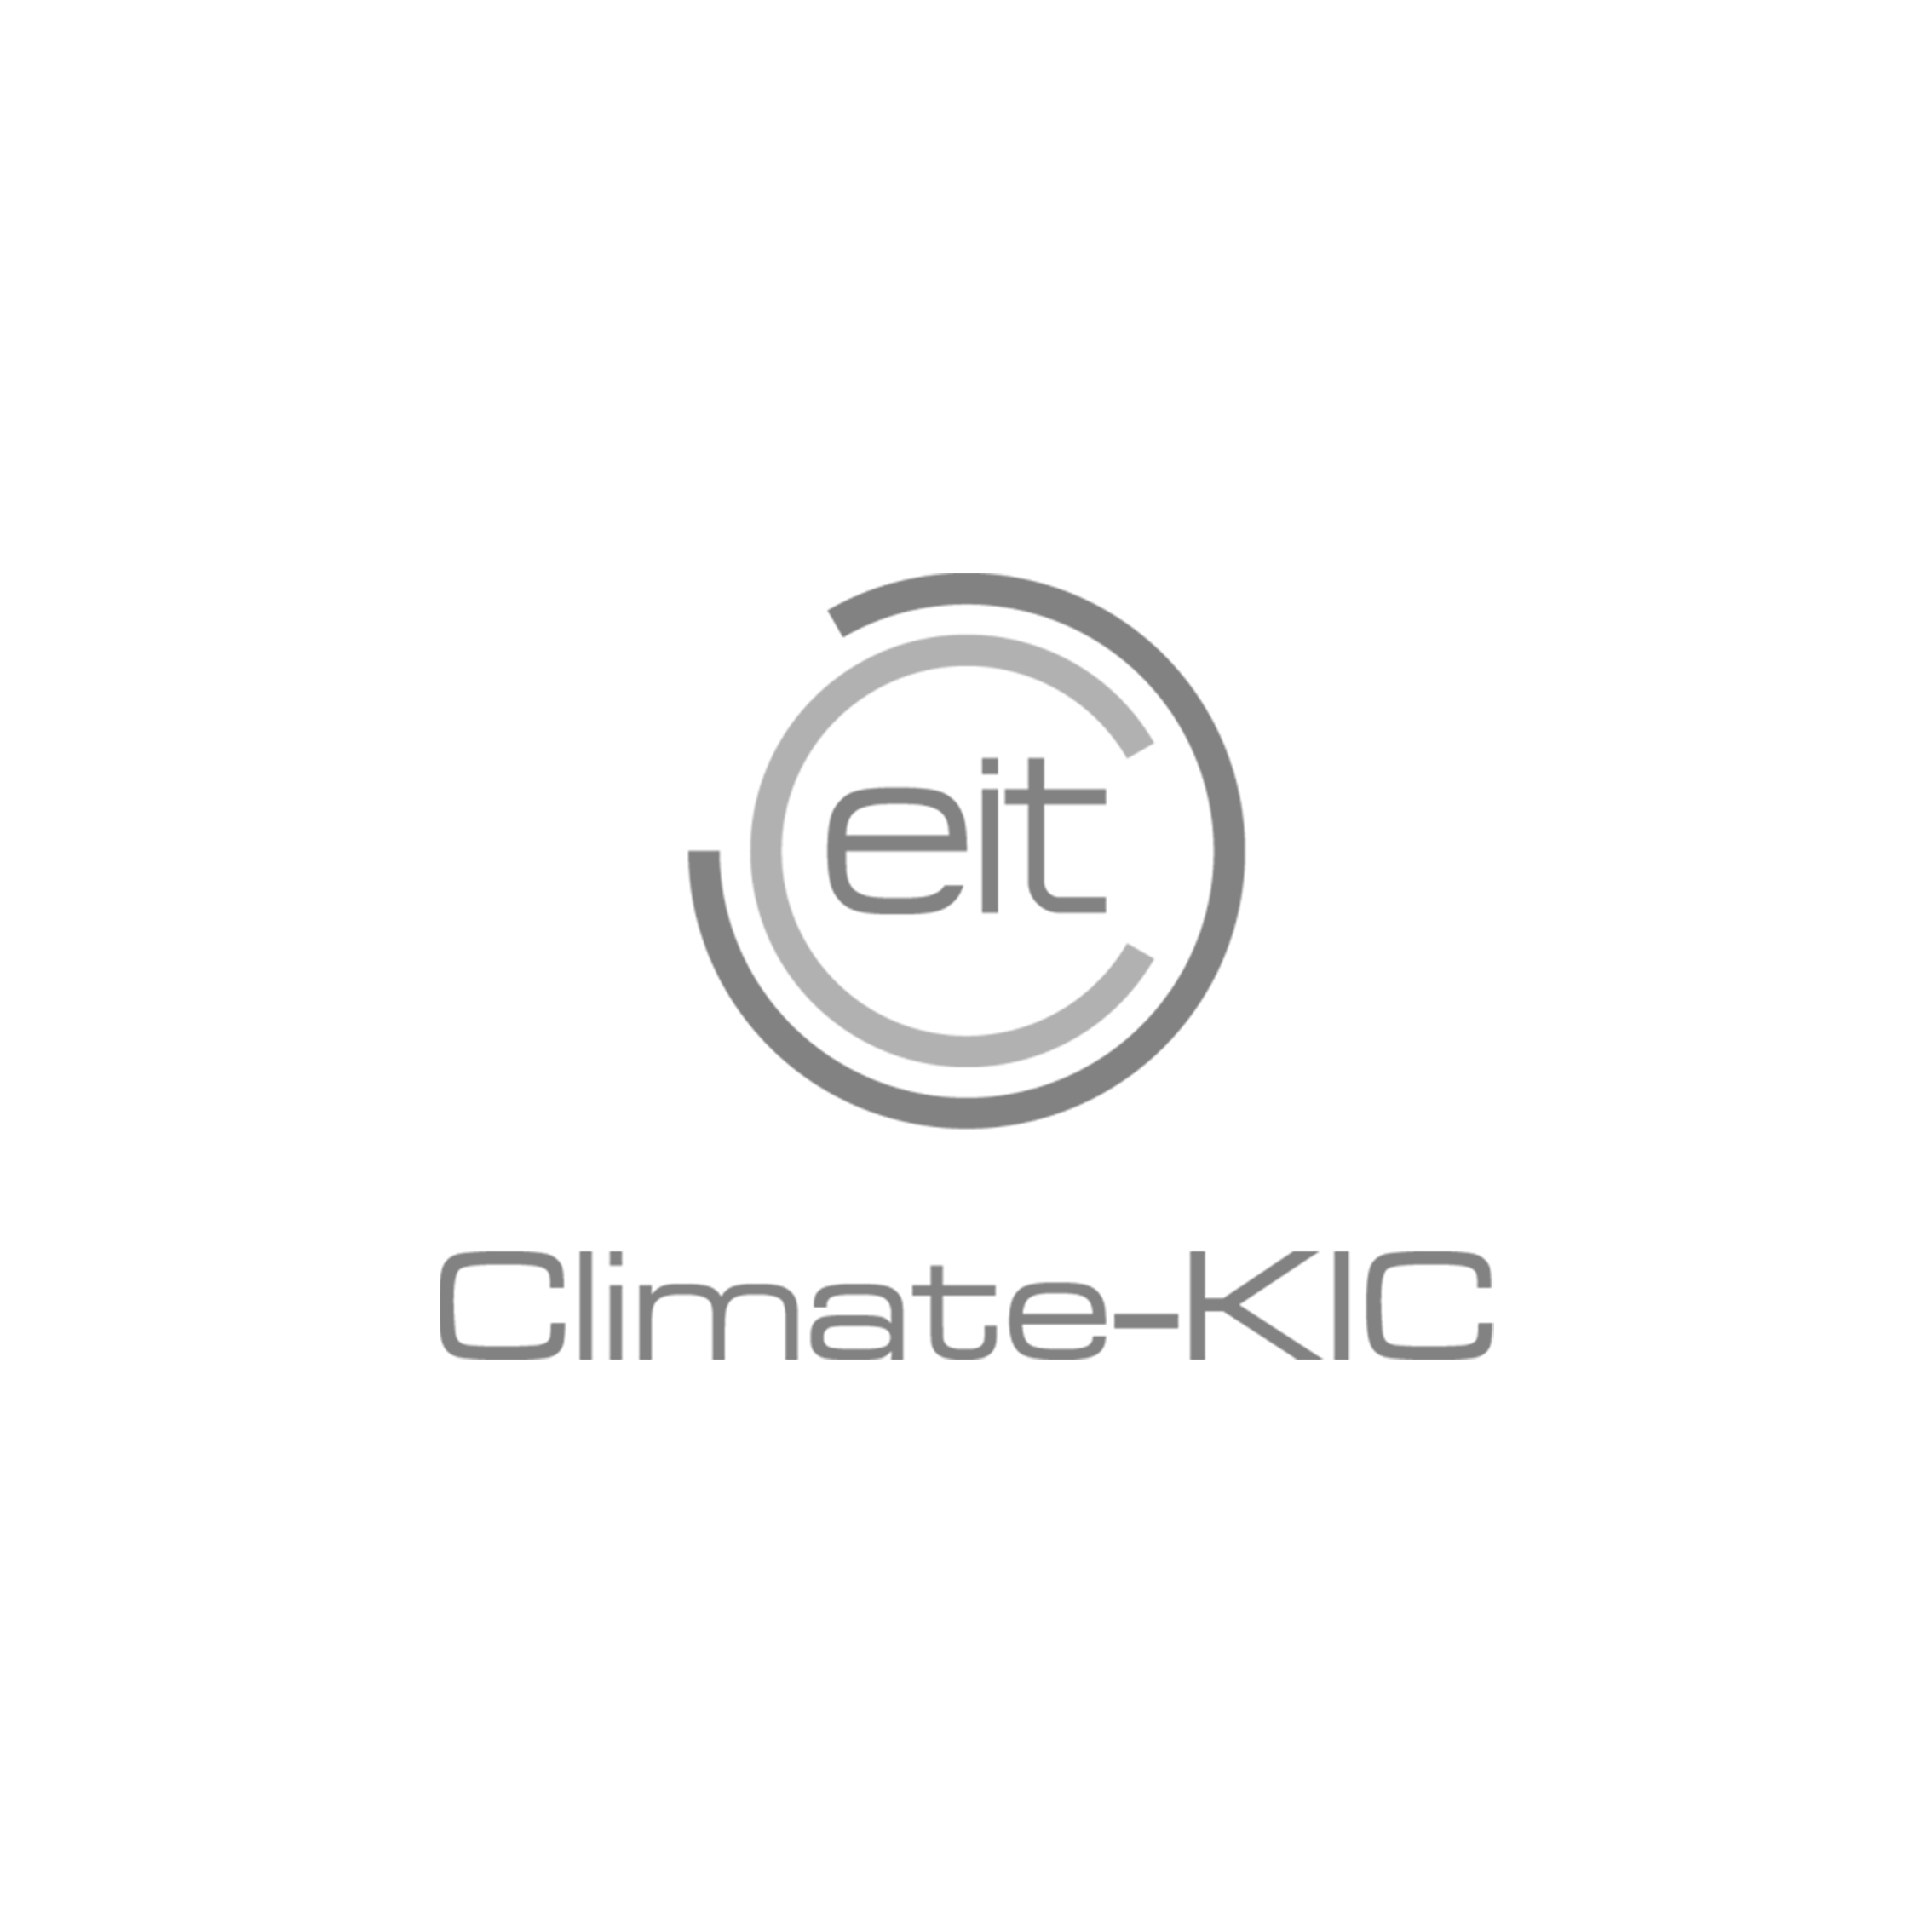 Partners-climateKIC-BW.png